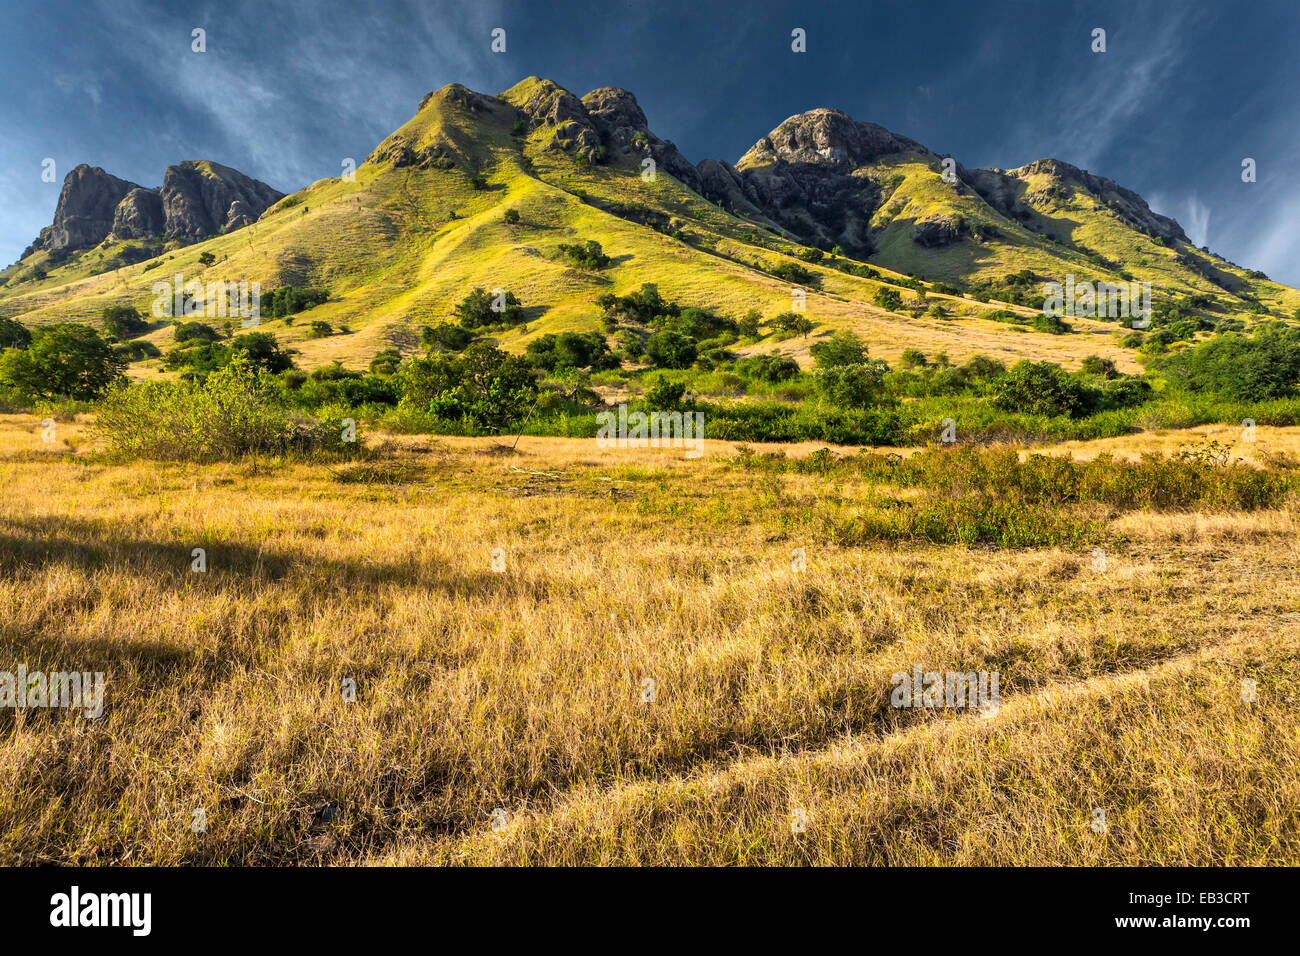 Indonesia, Flores Island, View of mountain from across withered grass of tropical savannah - Stock Image